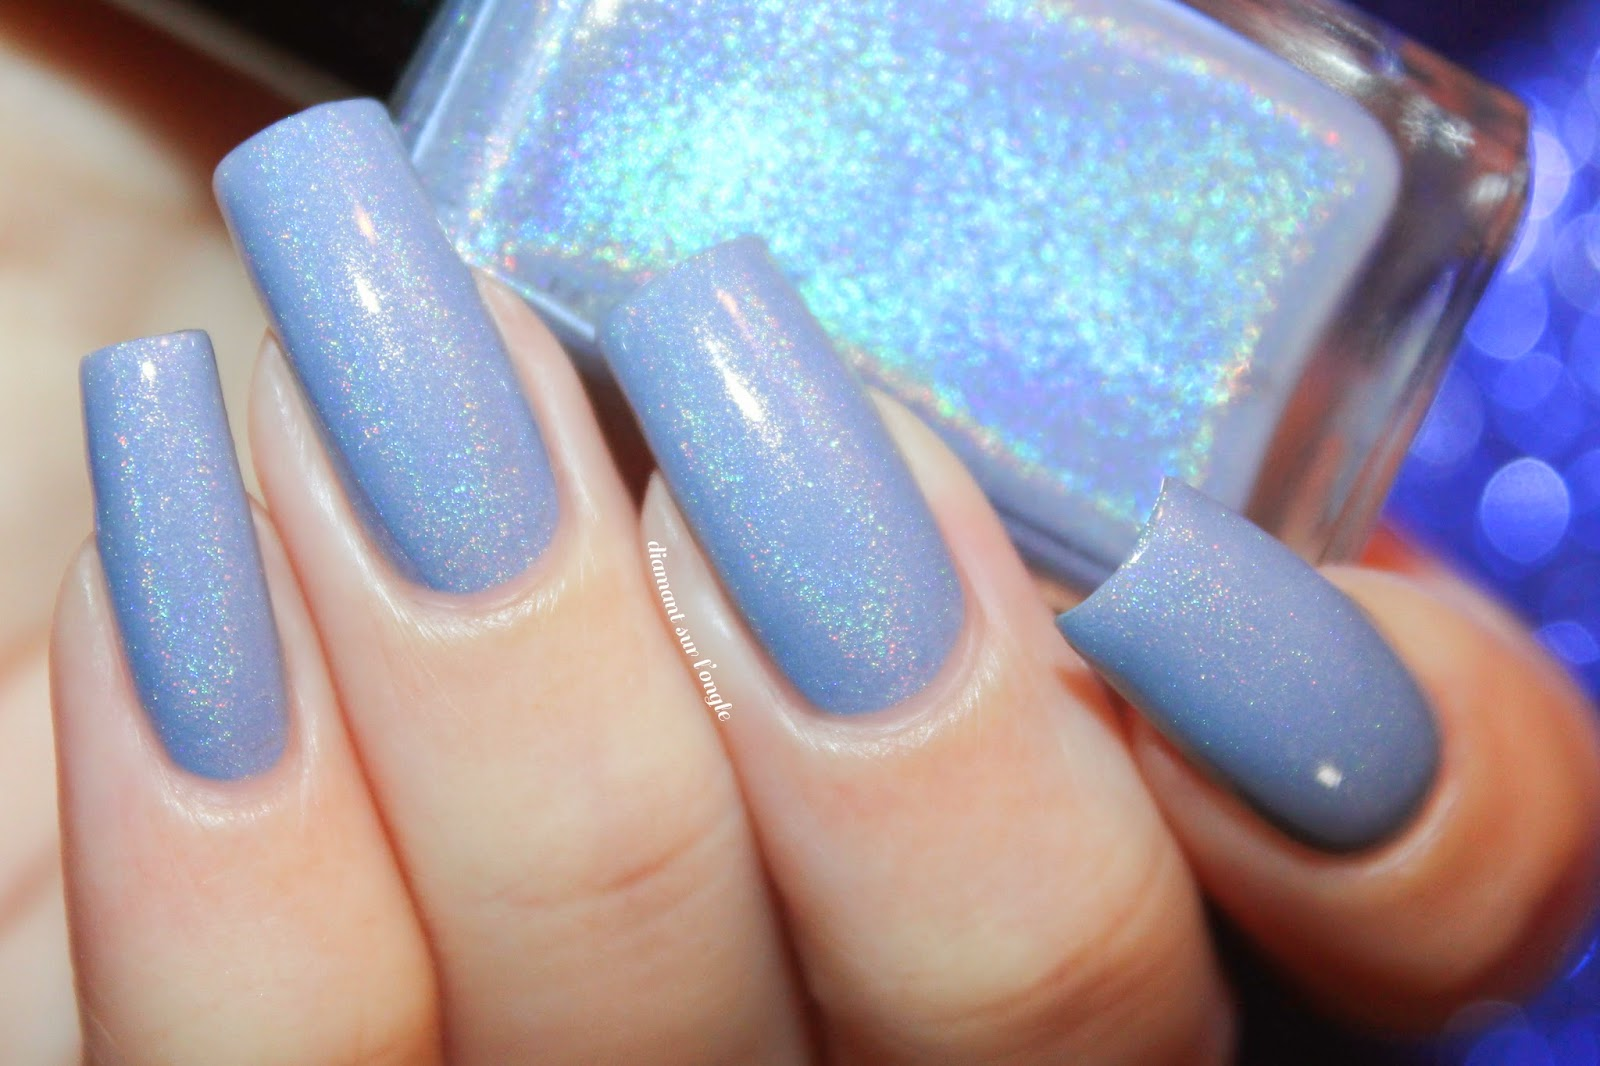 Swatch of April 2014 by Enchanted Polish